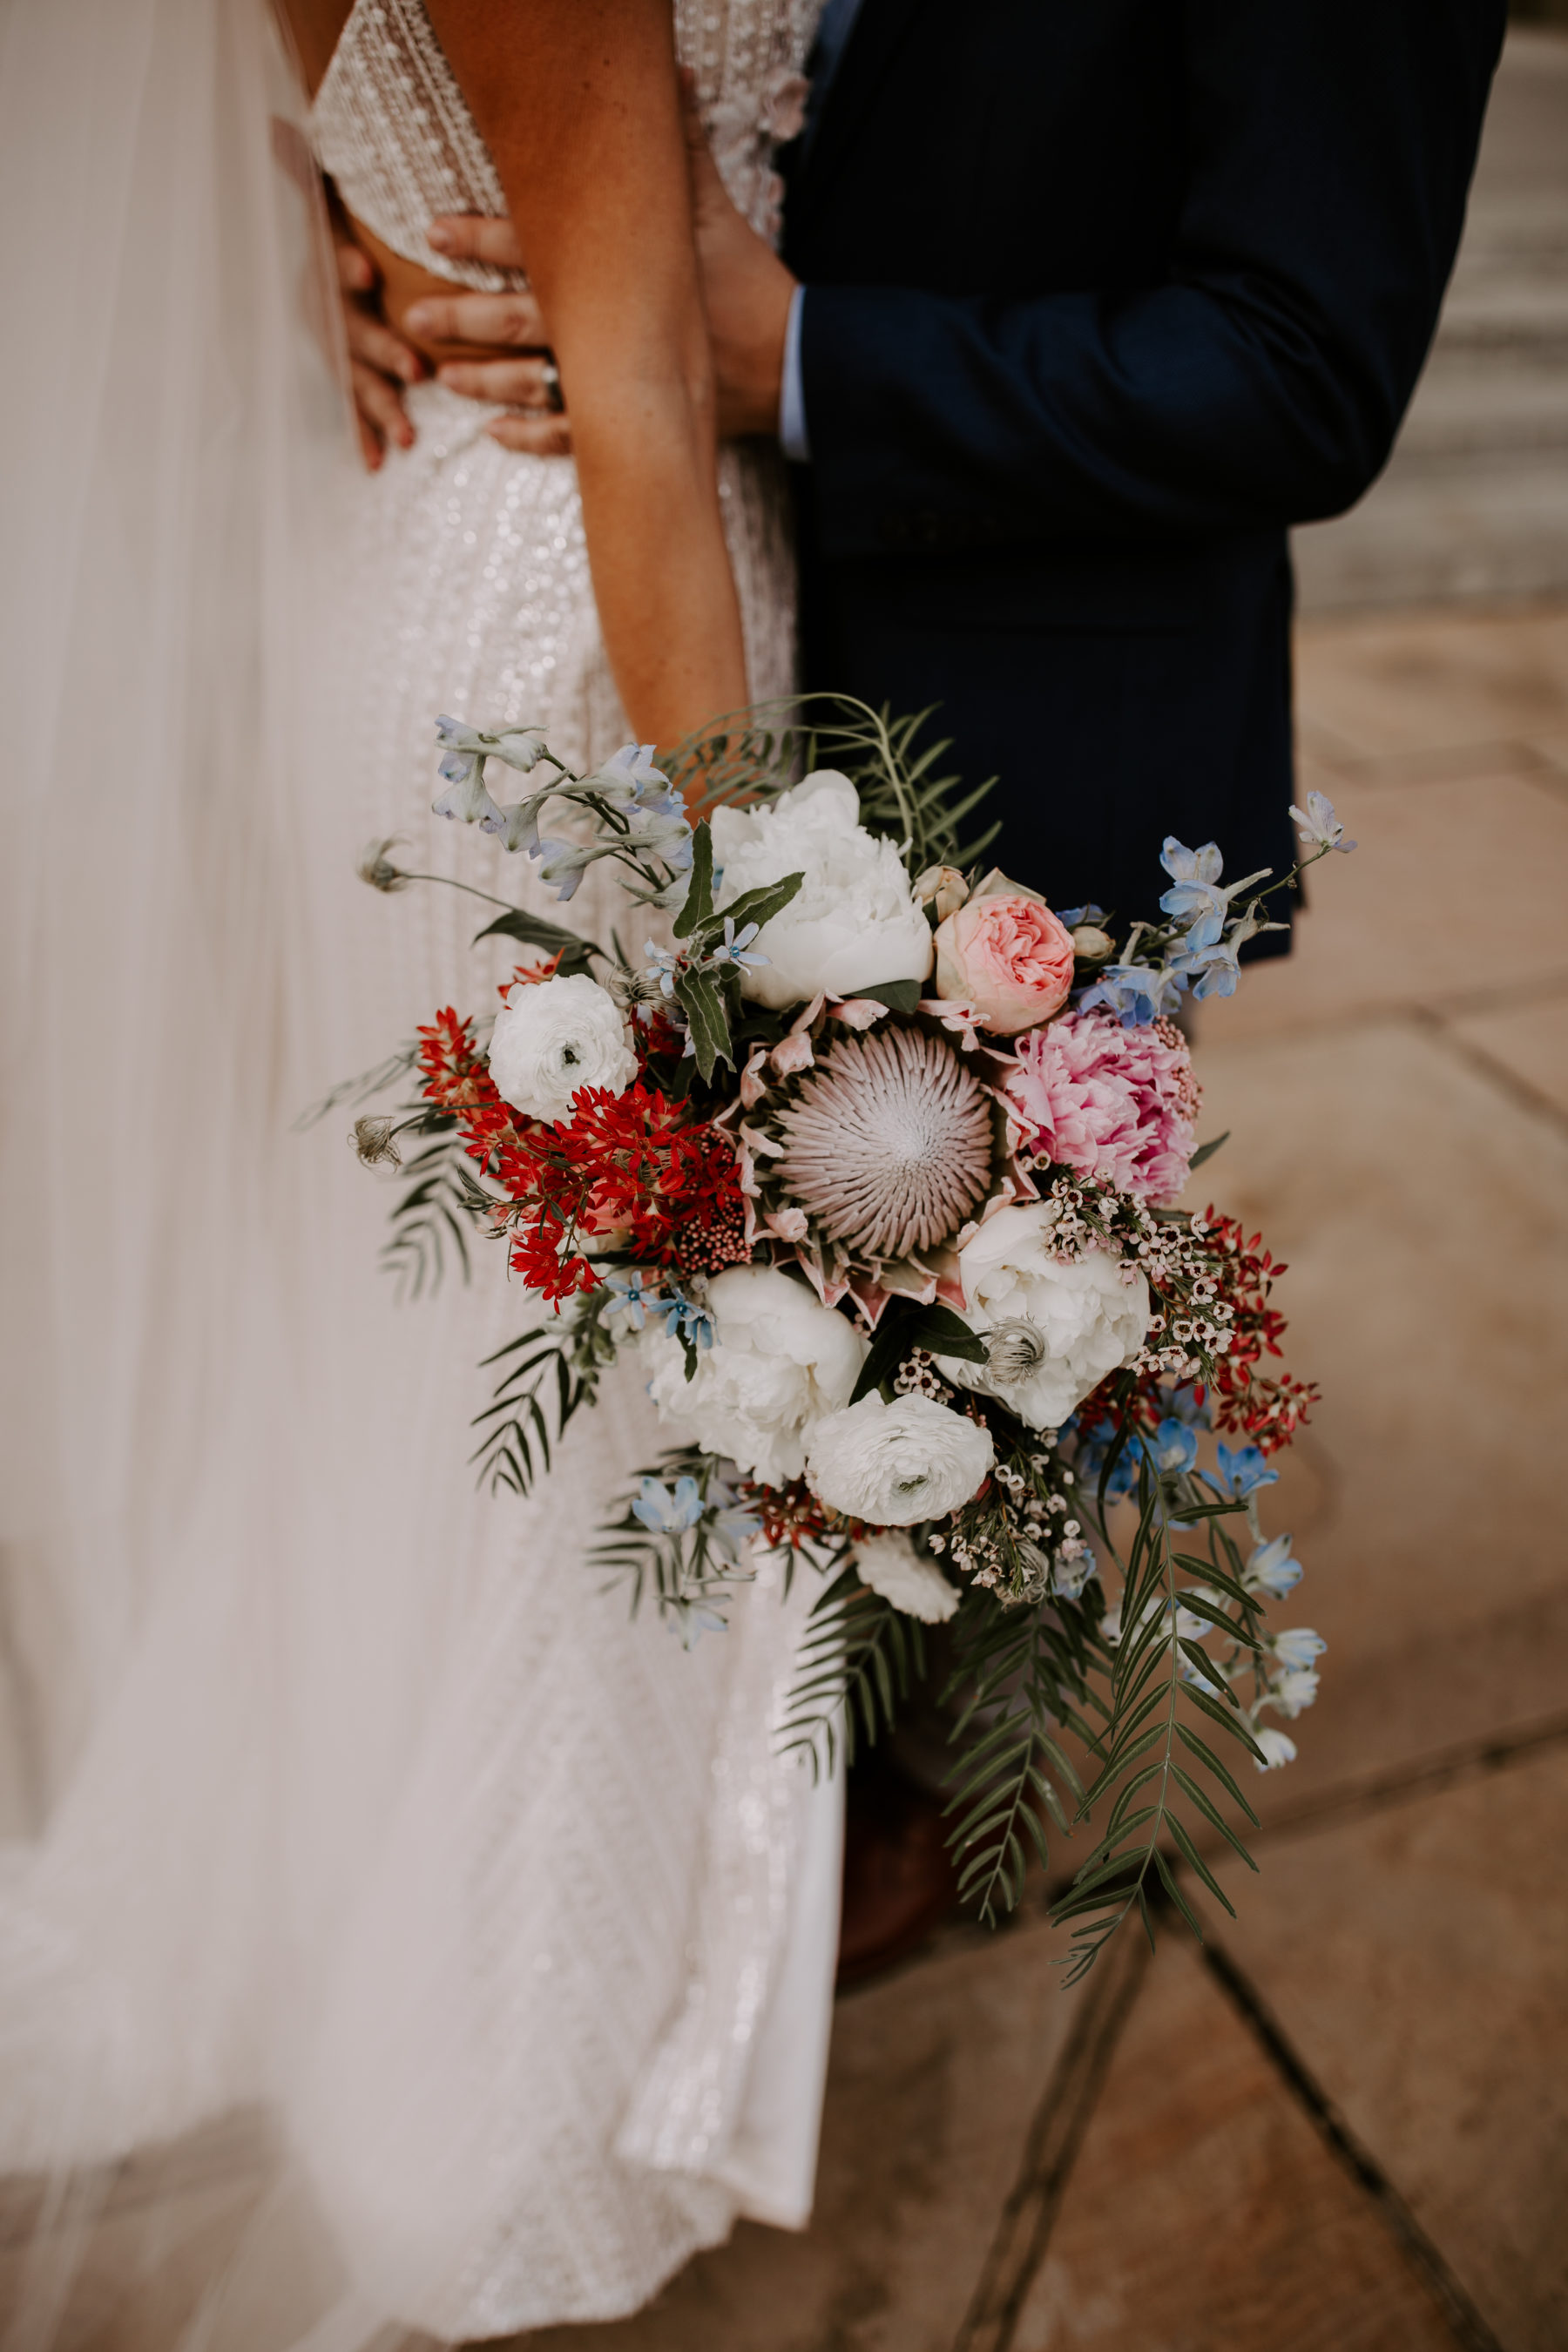 Protea Wedding Bouquet: Abigail Bridges Photography featured on Nashville Bride Guide